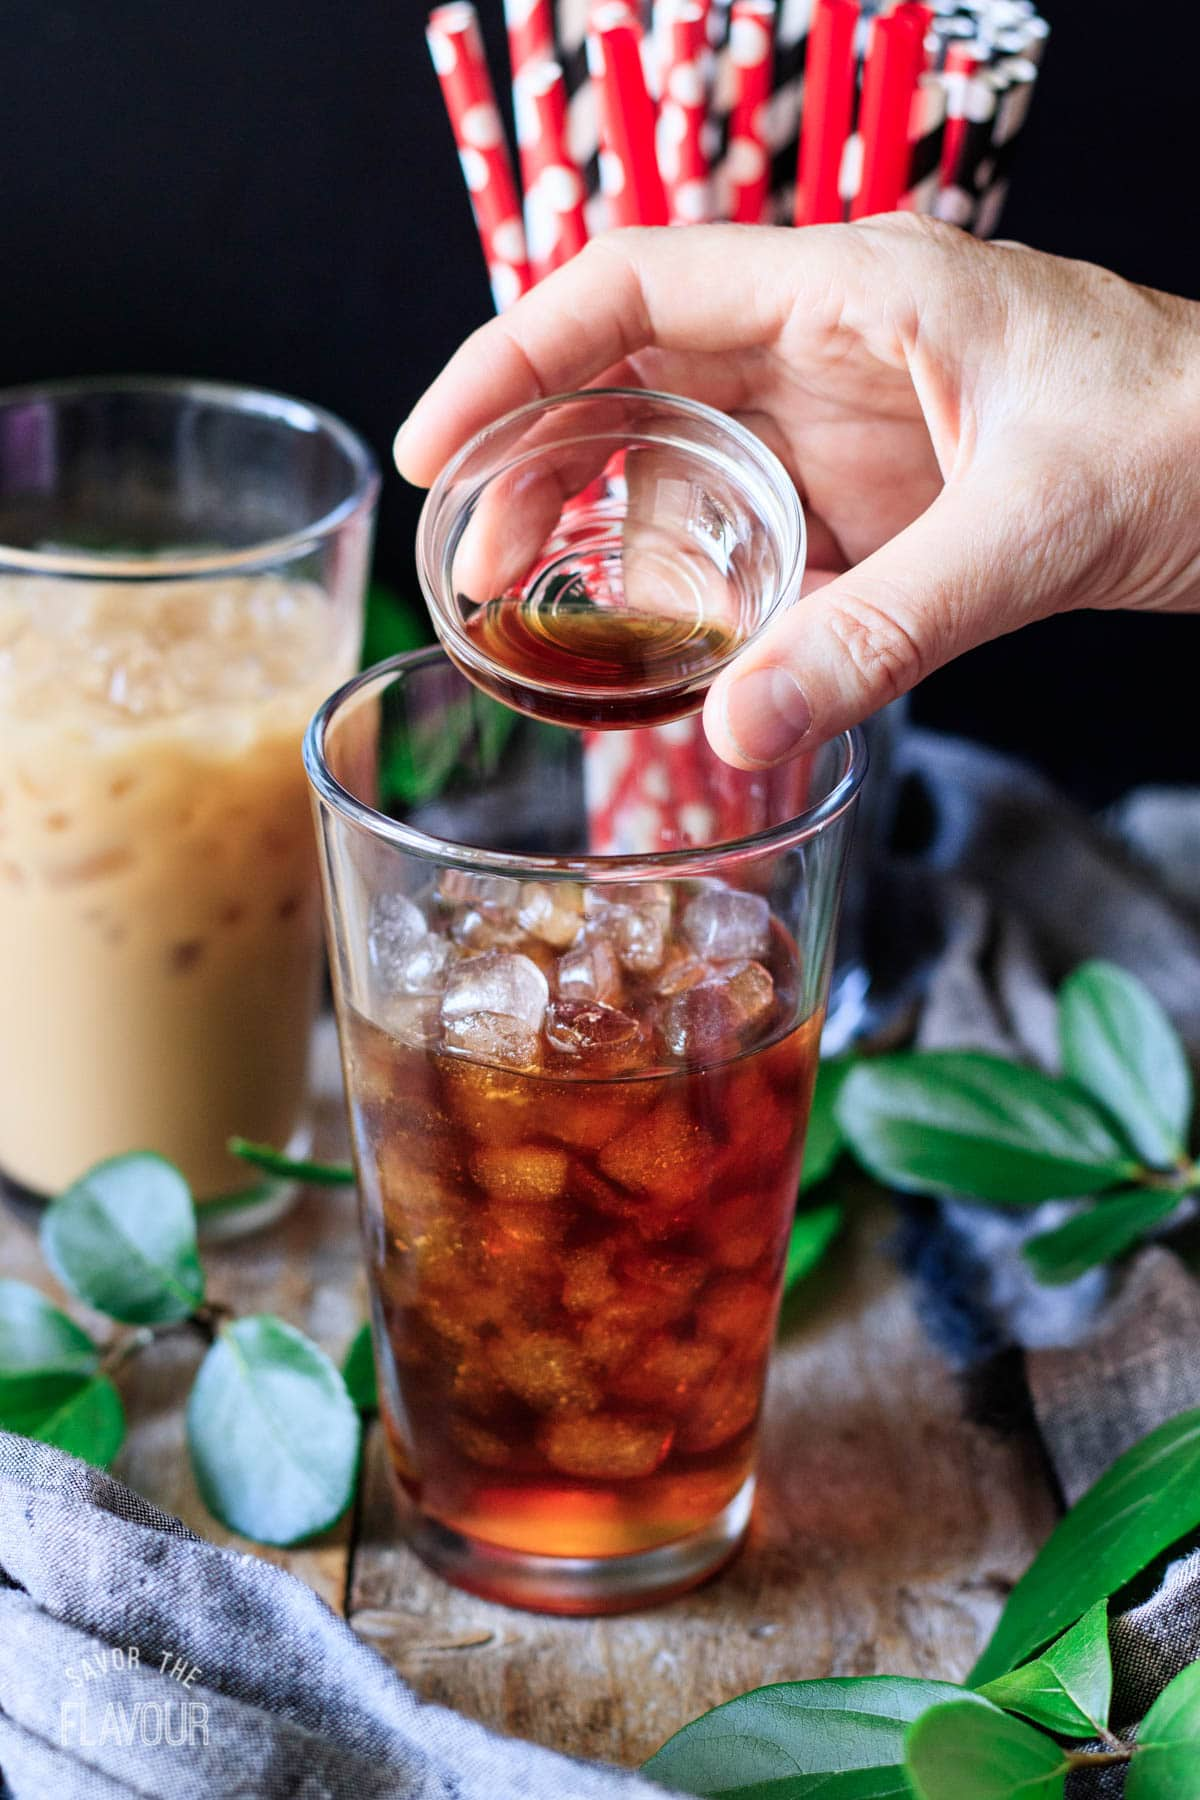 person adding vanilla extract to the iced coffee